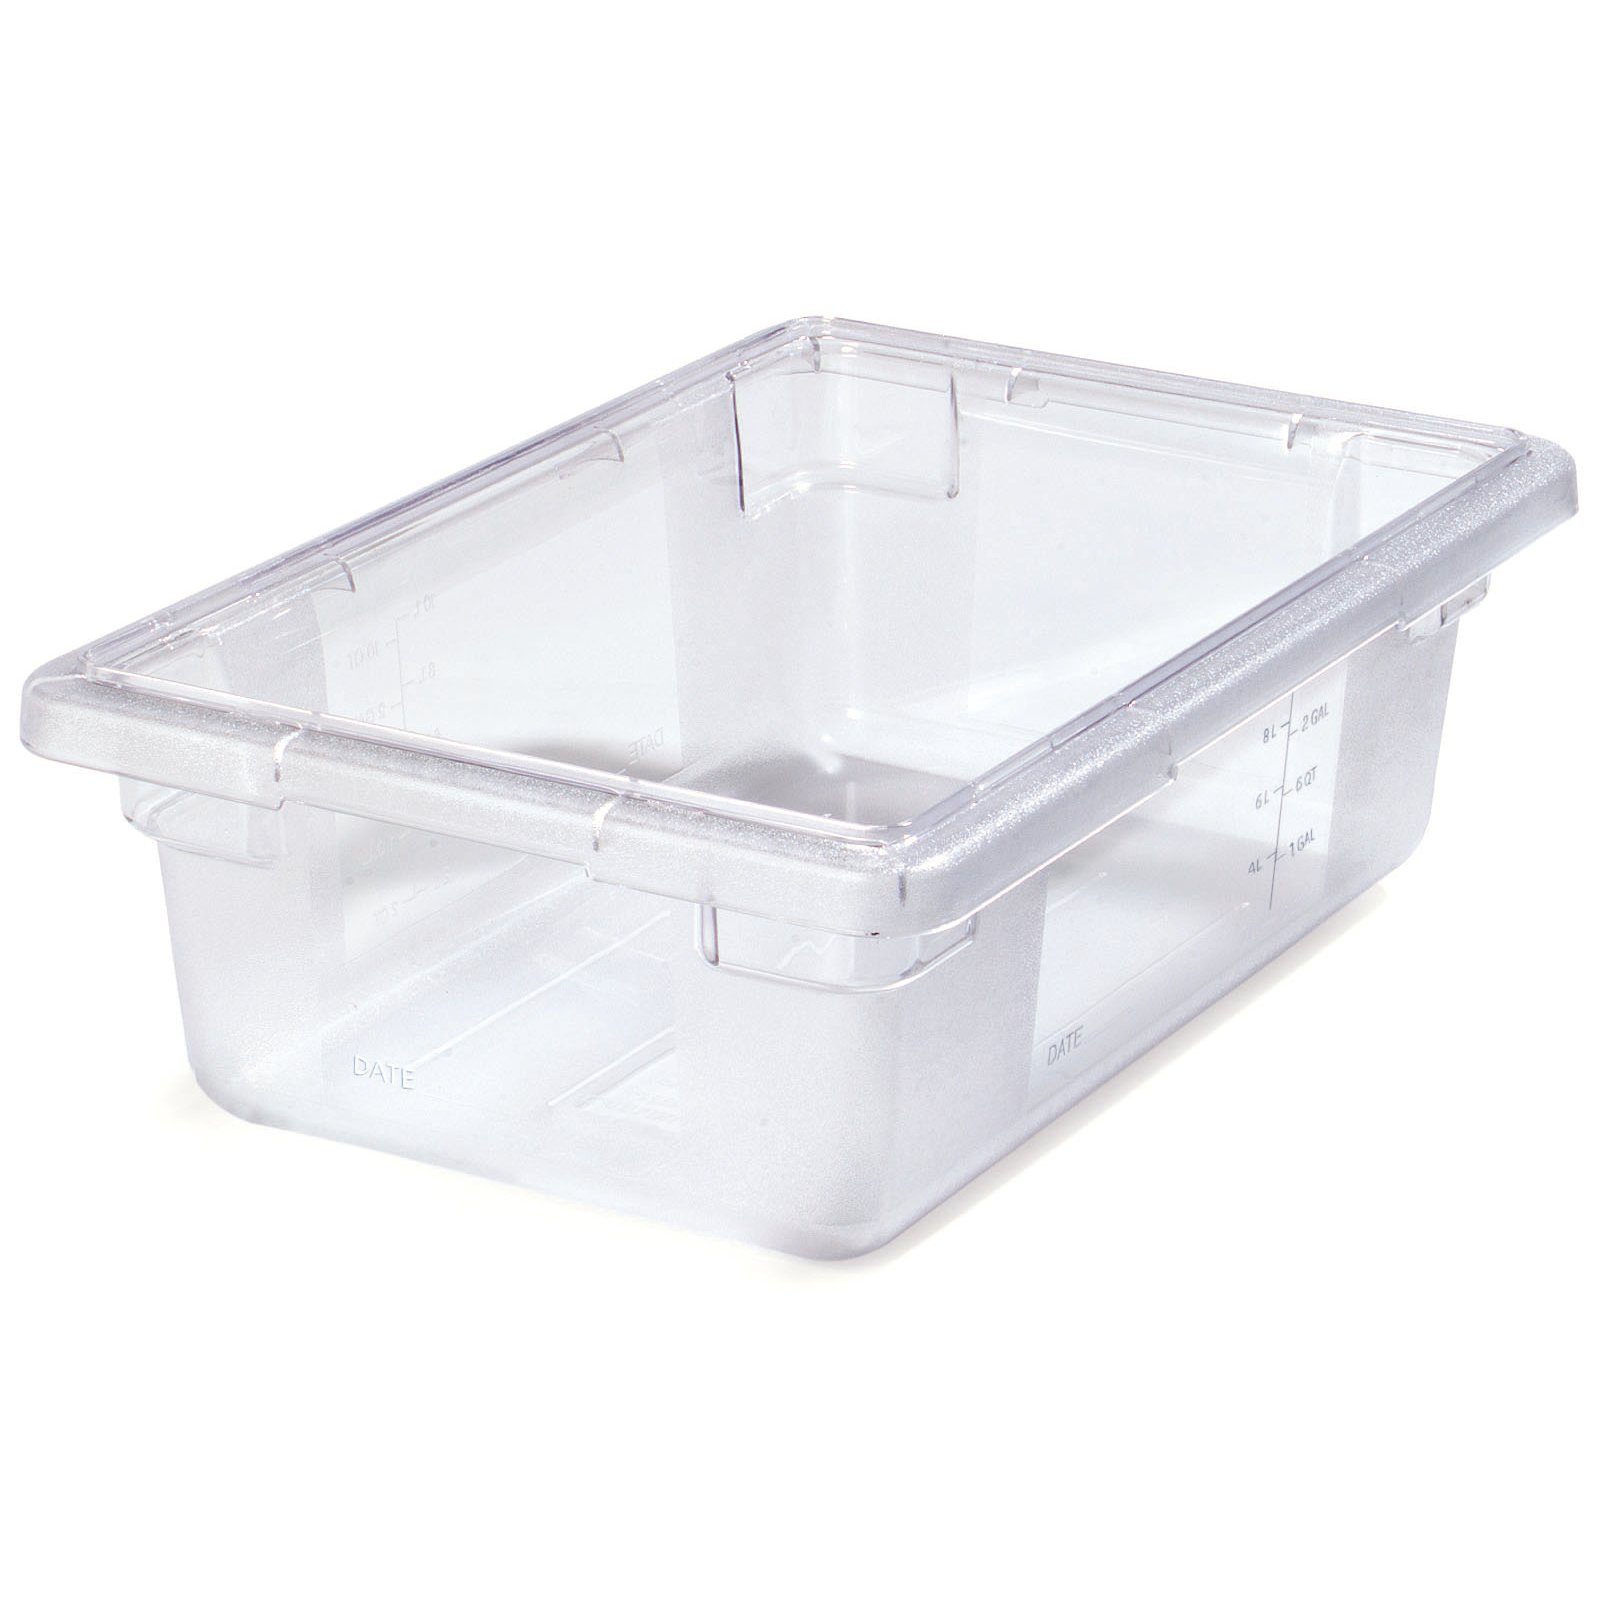 ... 1061107 - StorPlus™ Polycarbonate Food Box Storage Container 3.5 Gallon 18  x 12  sc 1 st  Carlisle FoodService Products & 1061107 - StorPlus™ Polycarbonate Food Box Storage Container 3.5 ... Aboutintivar.Com